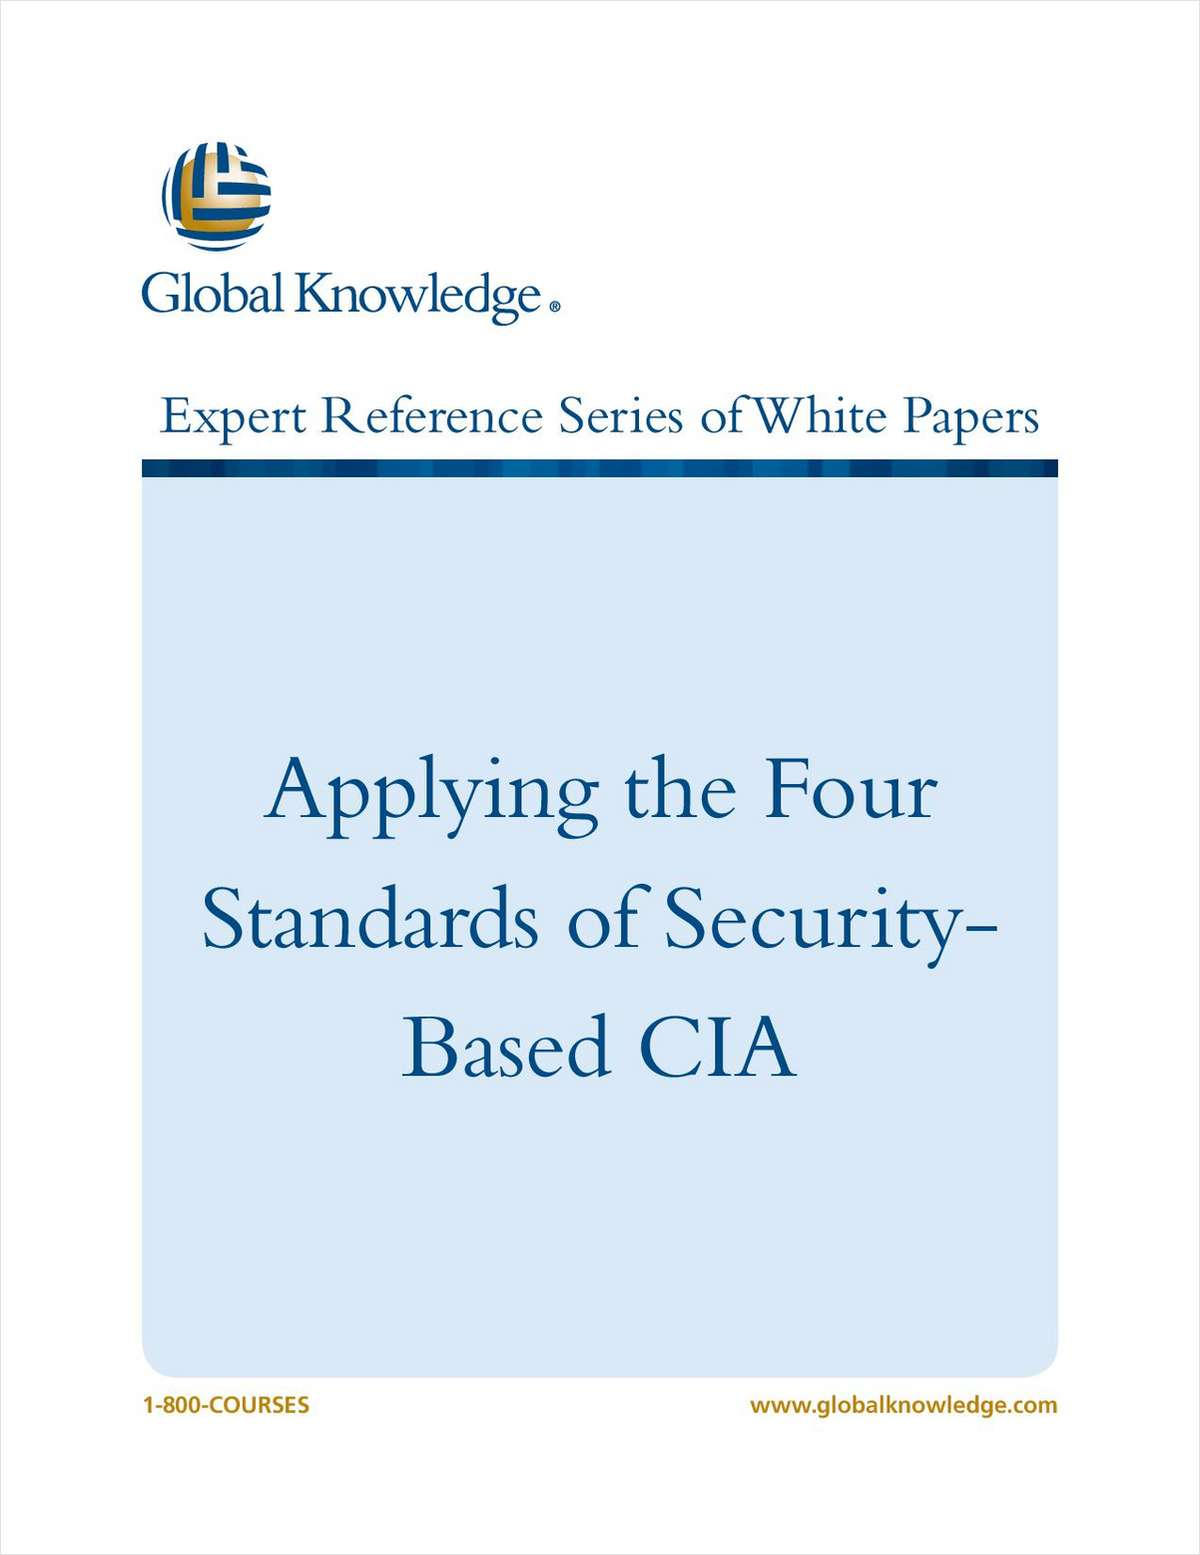 Applying the Four Standards of Security-Based CIA